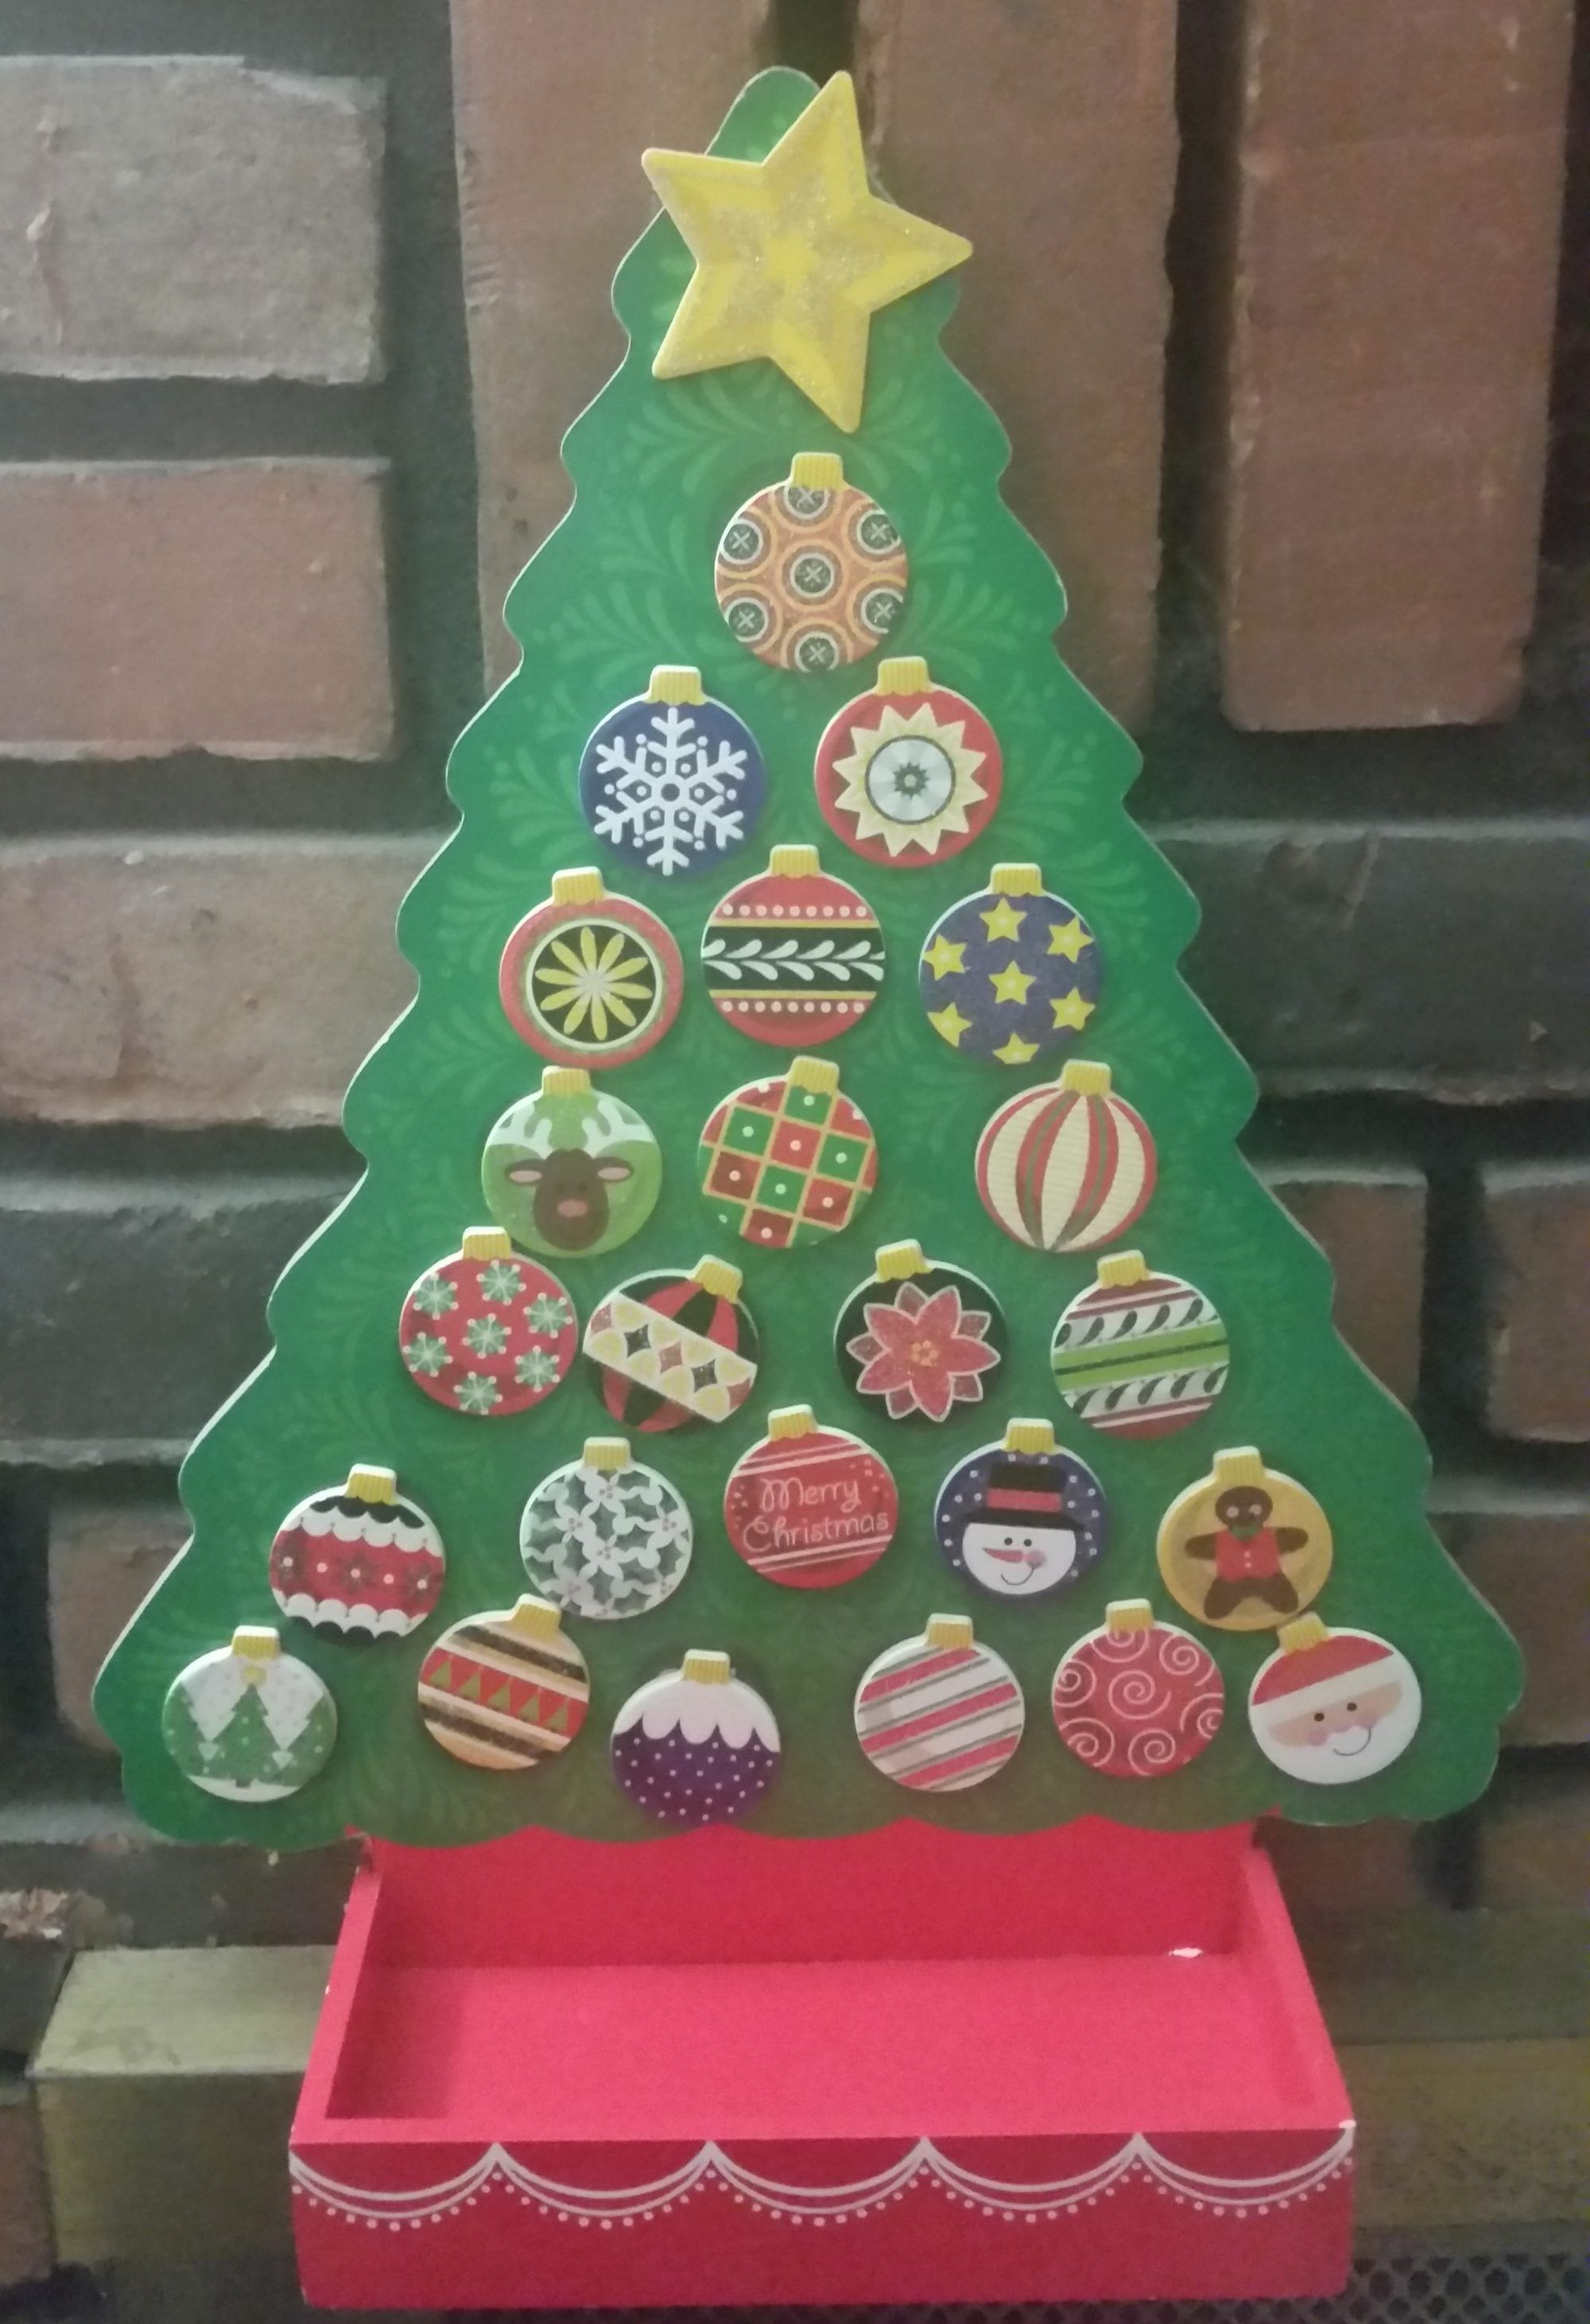 25 Days of Christmas Ideas for Kids, December Activities